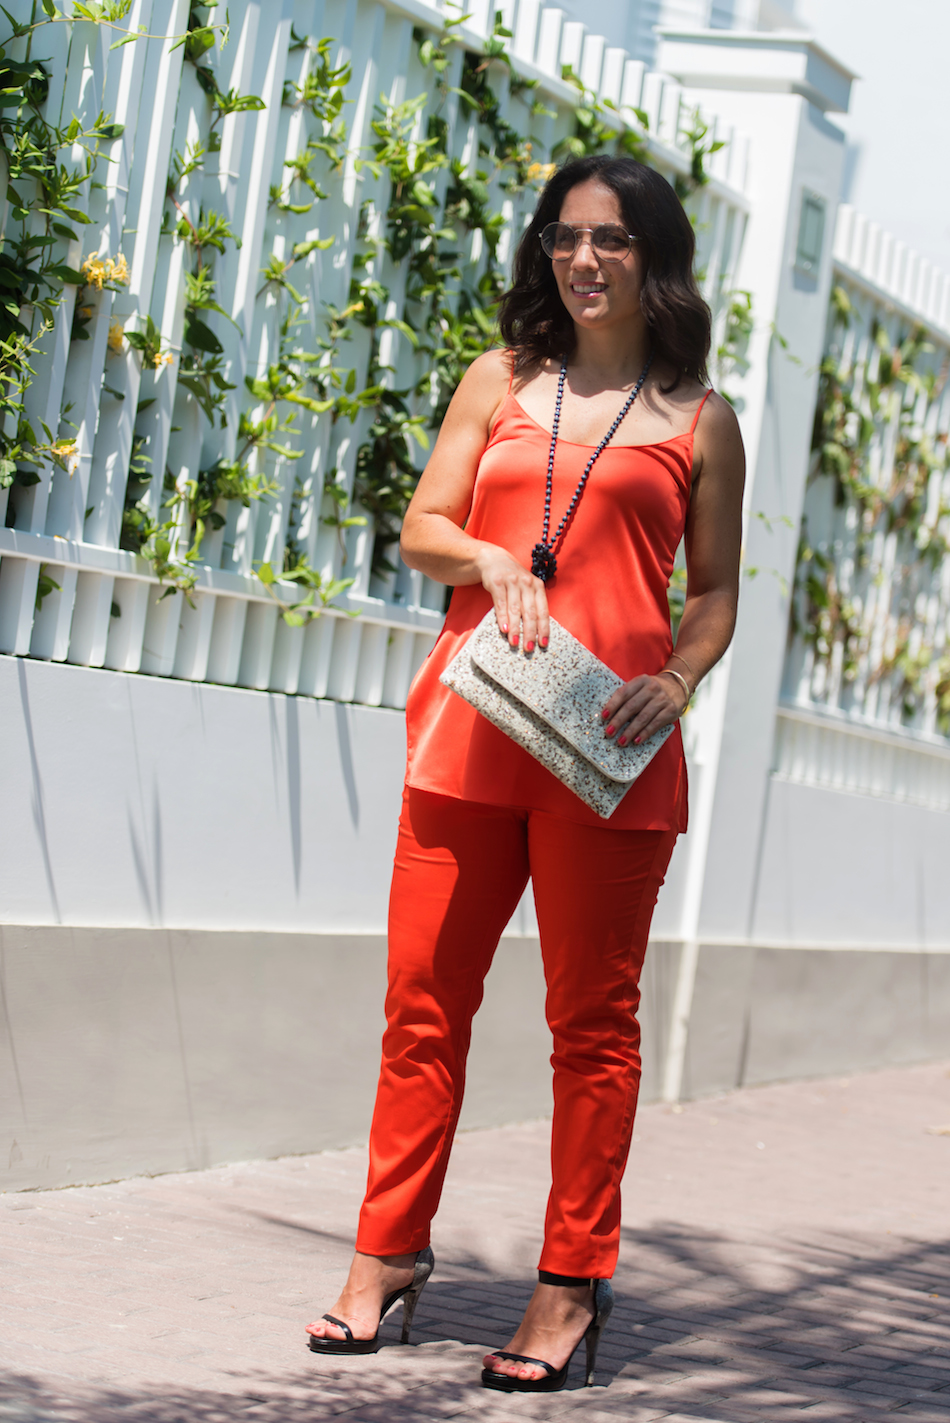 Olympia - Morphology - La Vida de Serendipity - Total Look color block